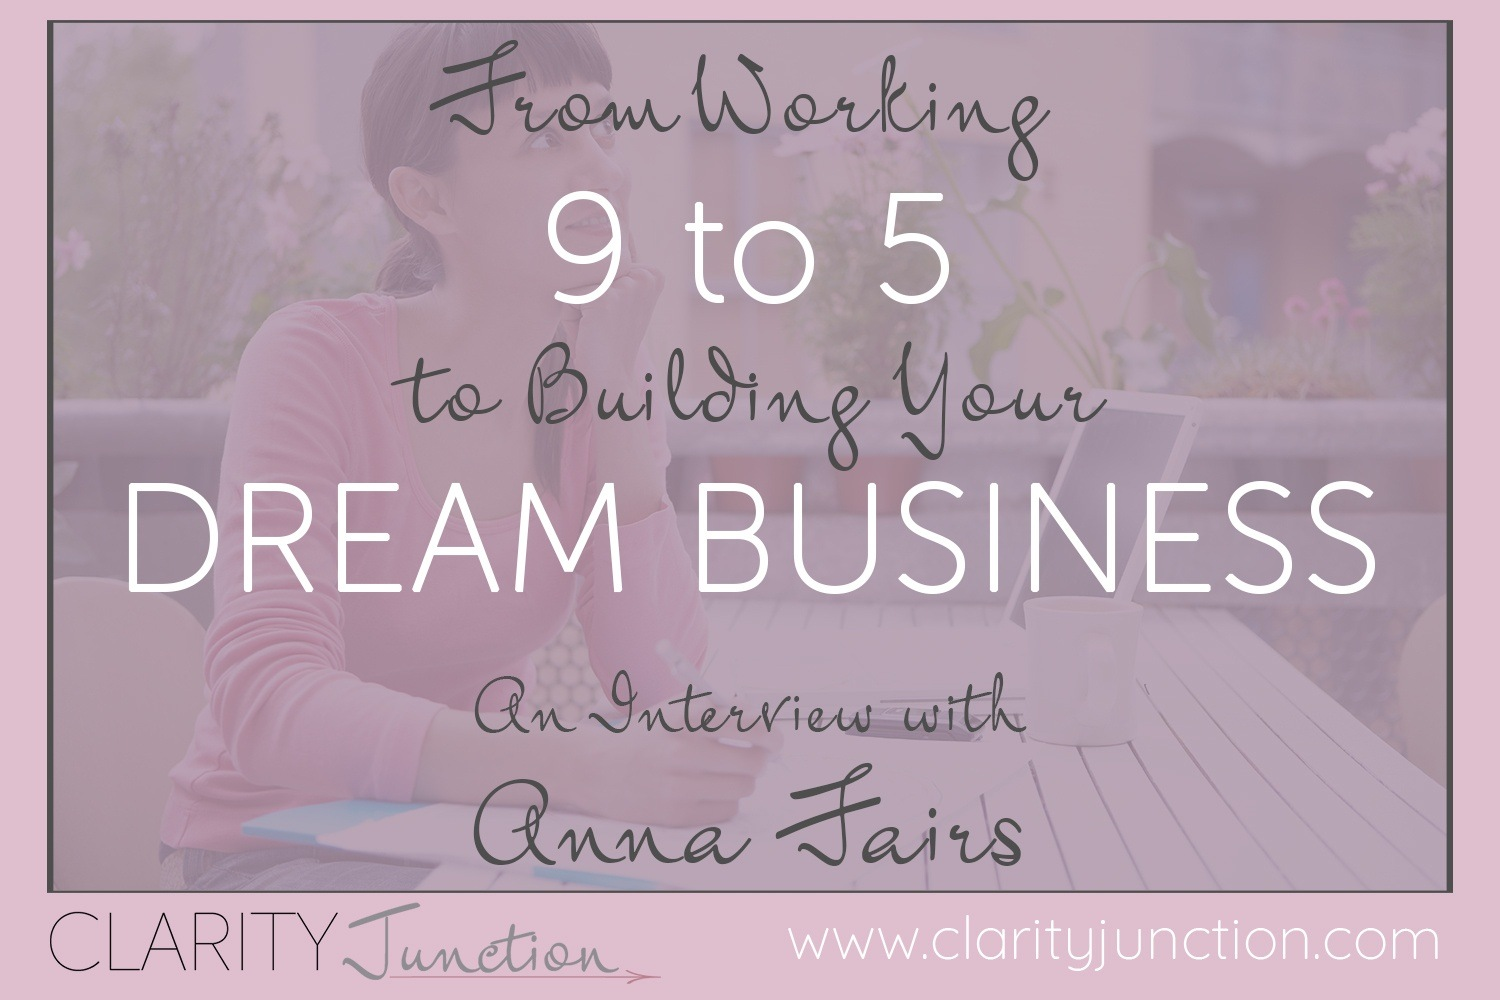 From Working 9 to 5 to Building Your Dream Business